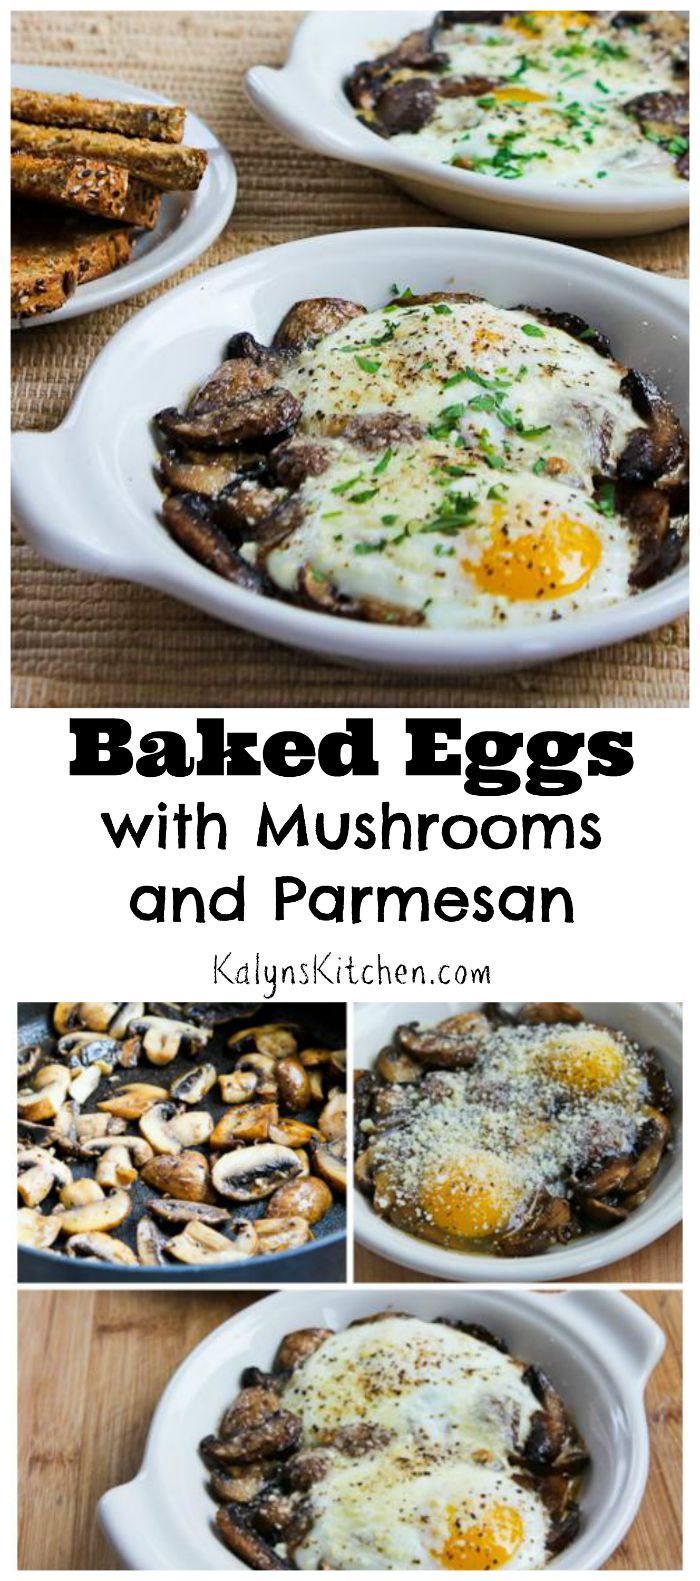 Kalyn's Kitchen®: Baked Eggs with Mushrooms and Parmesan